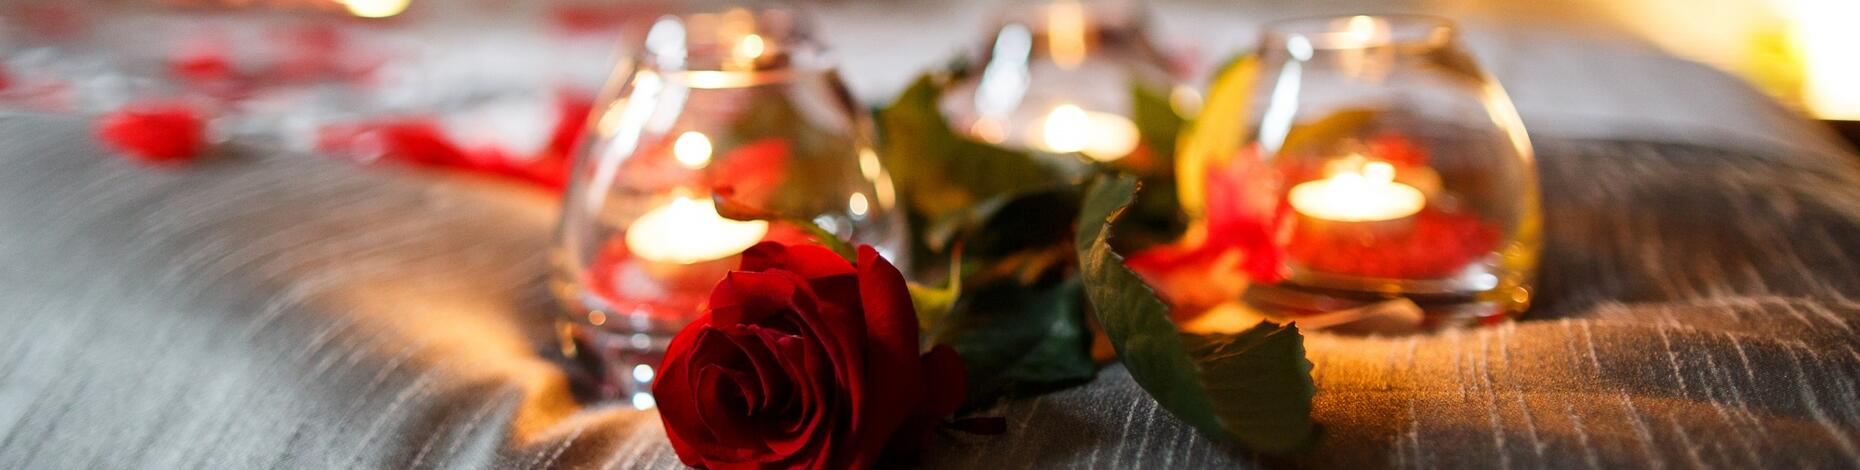 San Valentine Offer in Rimini at romantic hotel with spa